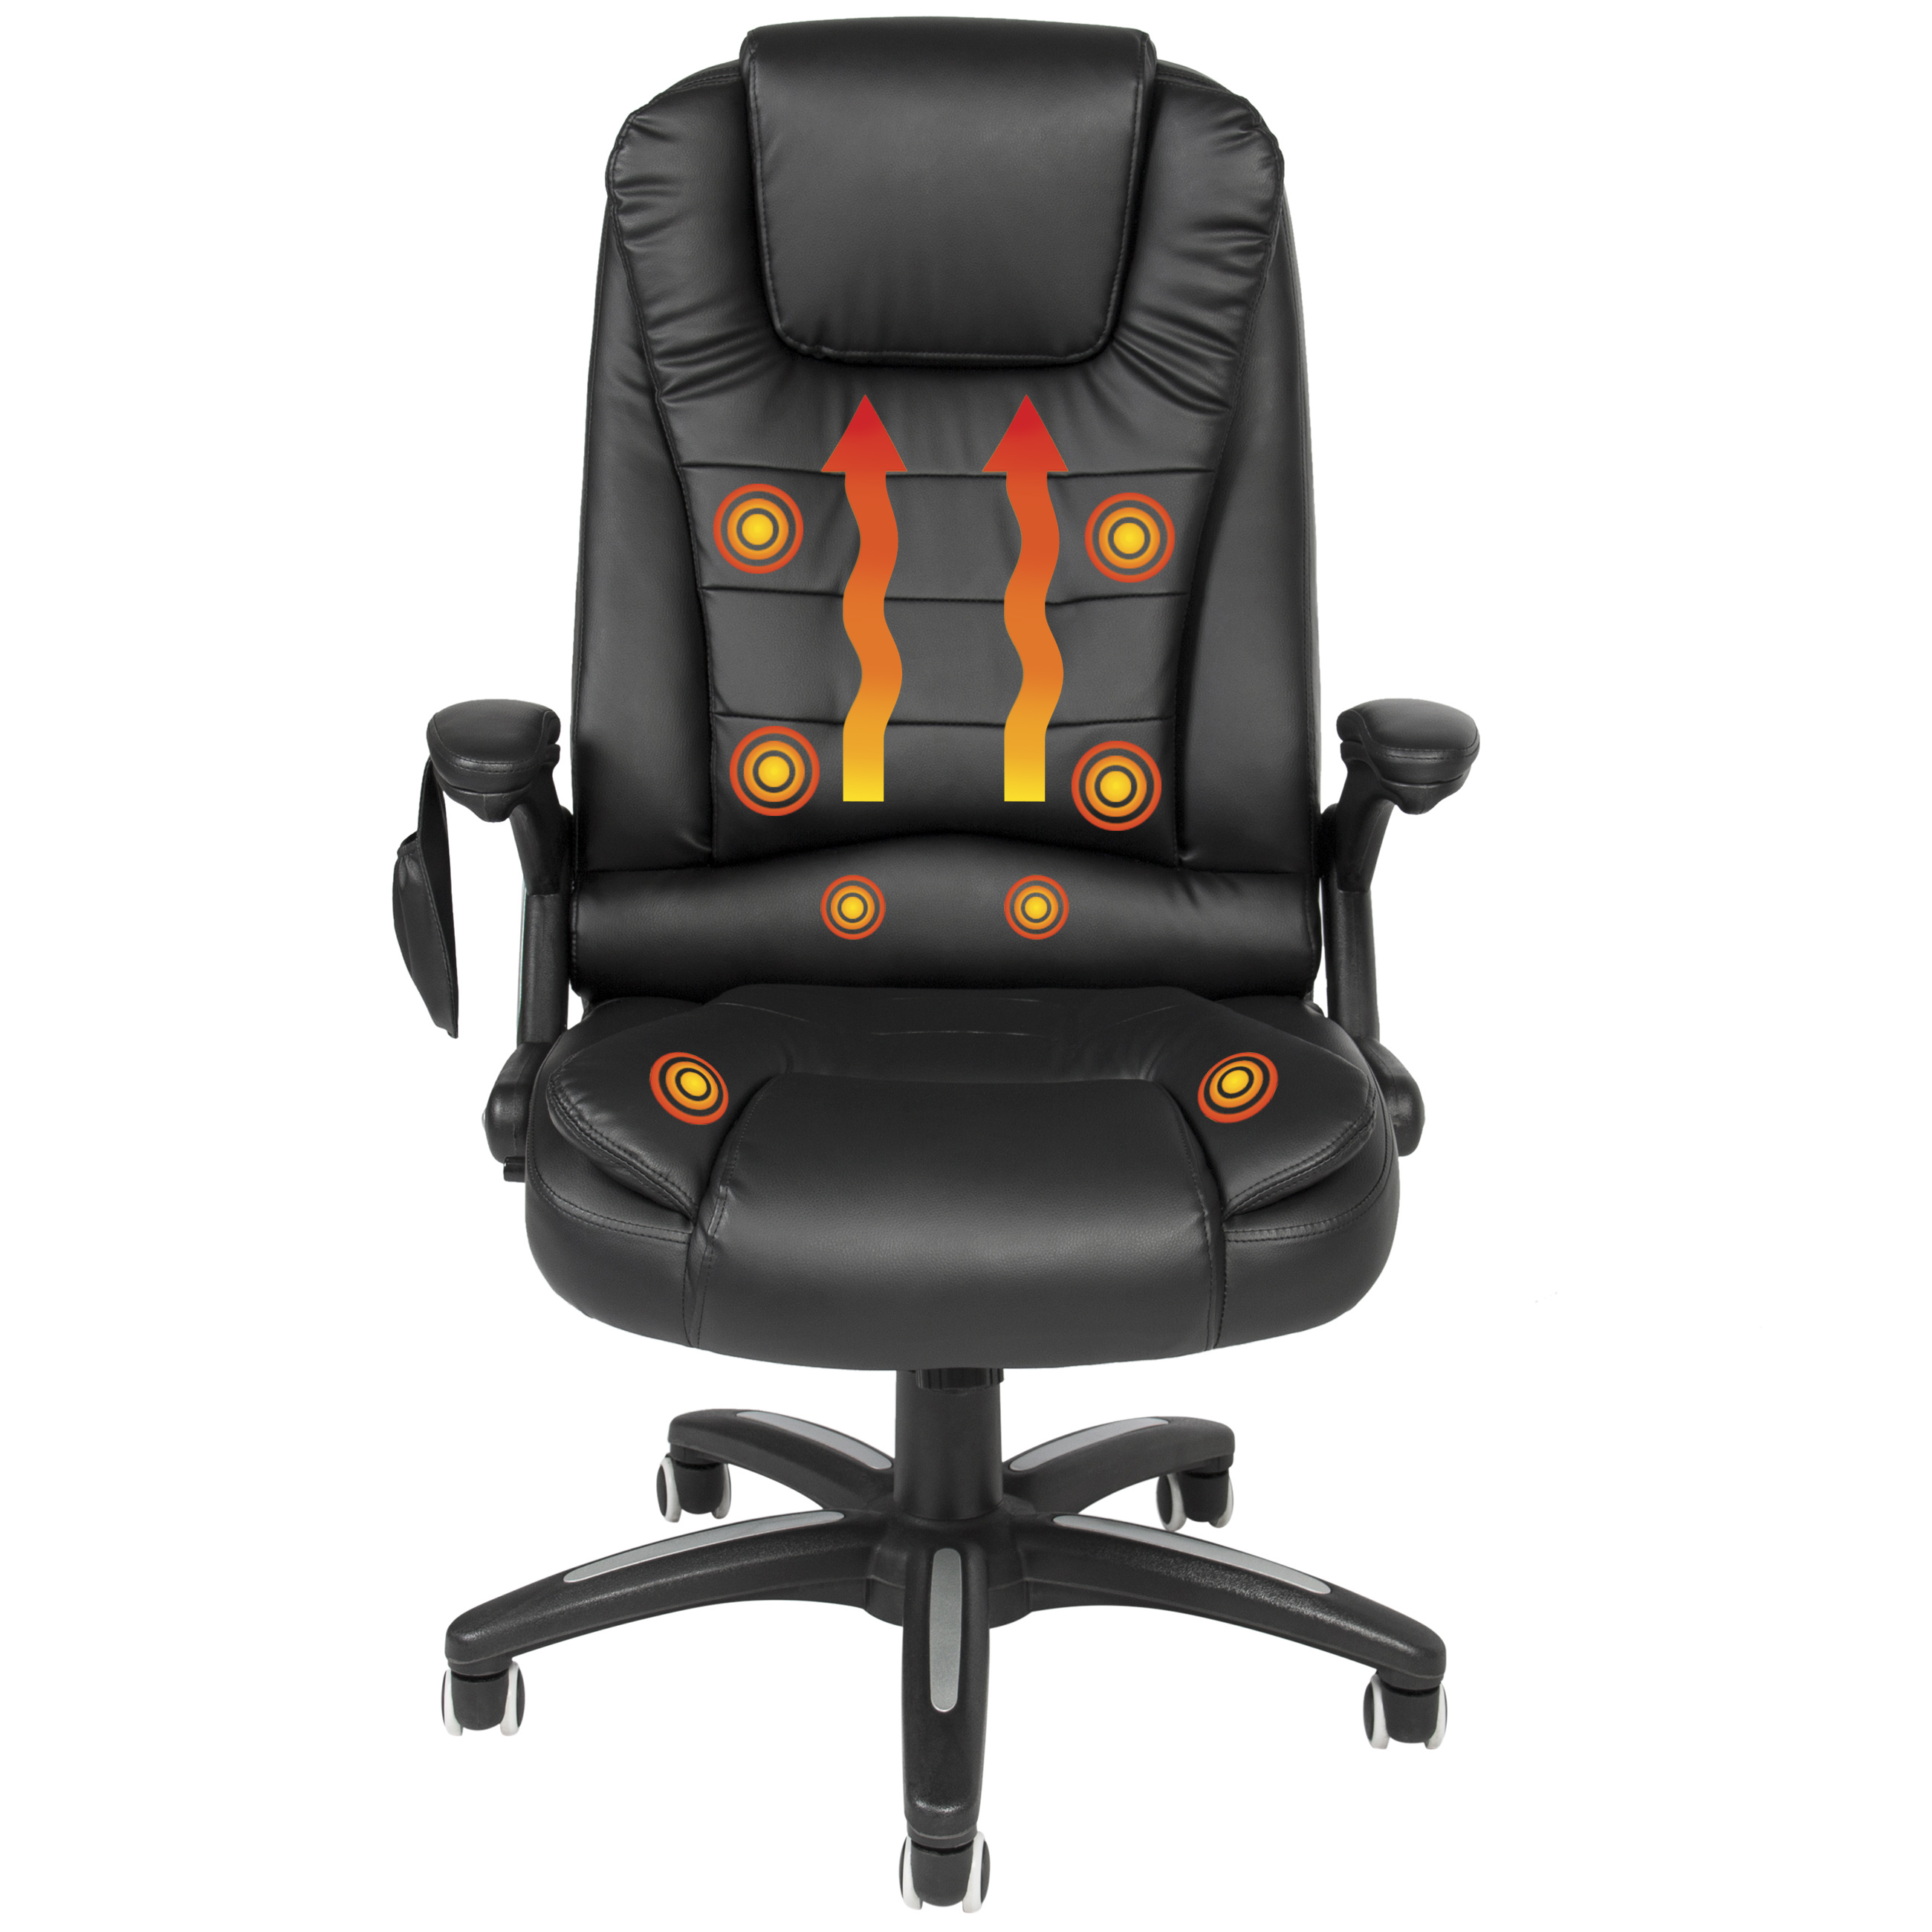 Best Choice Products Executive Ergonomic Heated Vibrating Computer Office Massage Chair - Black